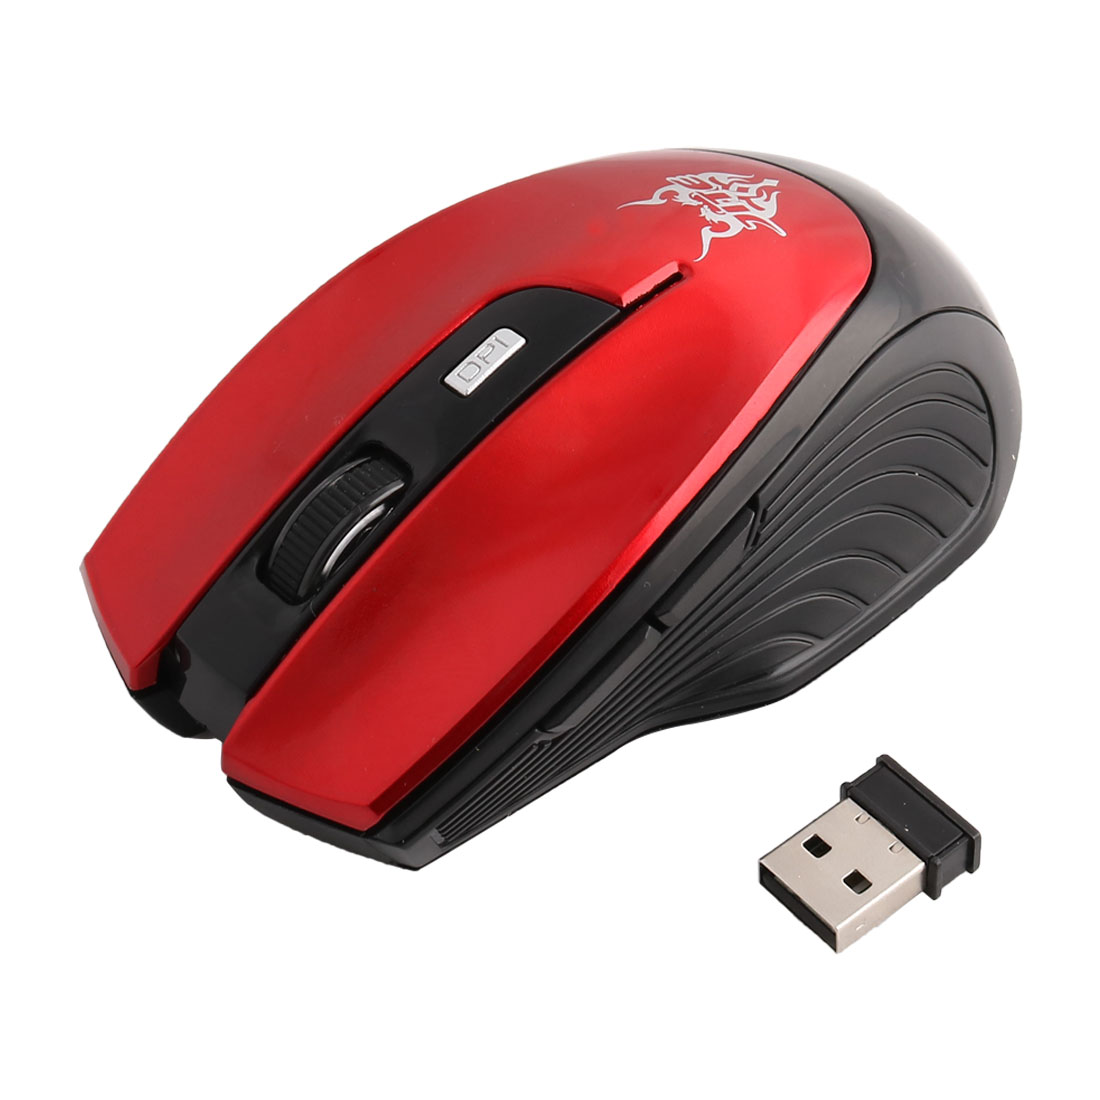 Notebook PC Wireless 6 Button Portable Mobile Mouse Optical Mice Red Black